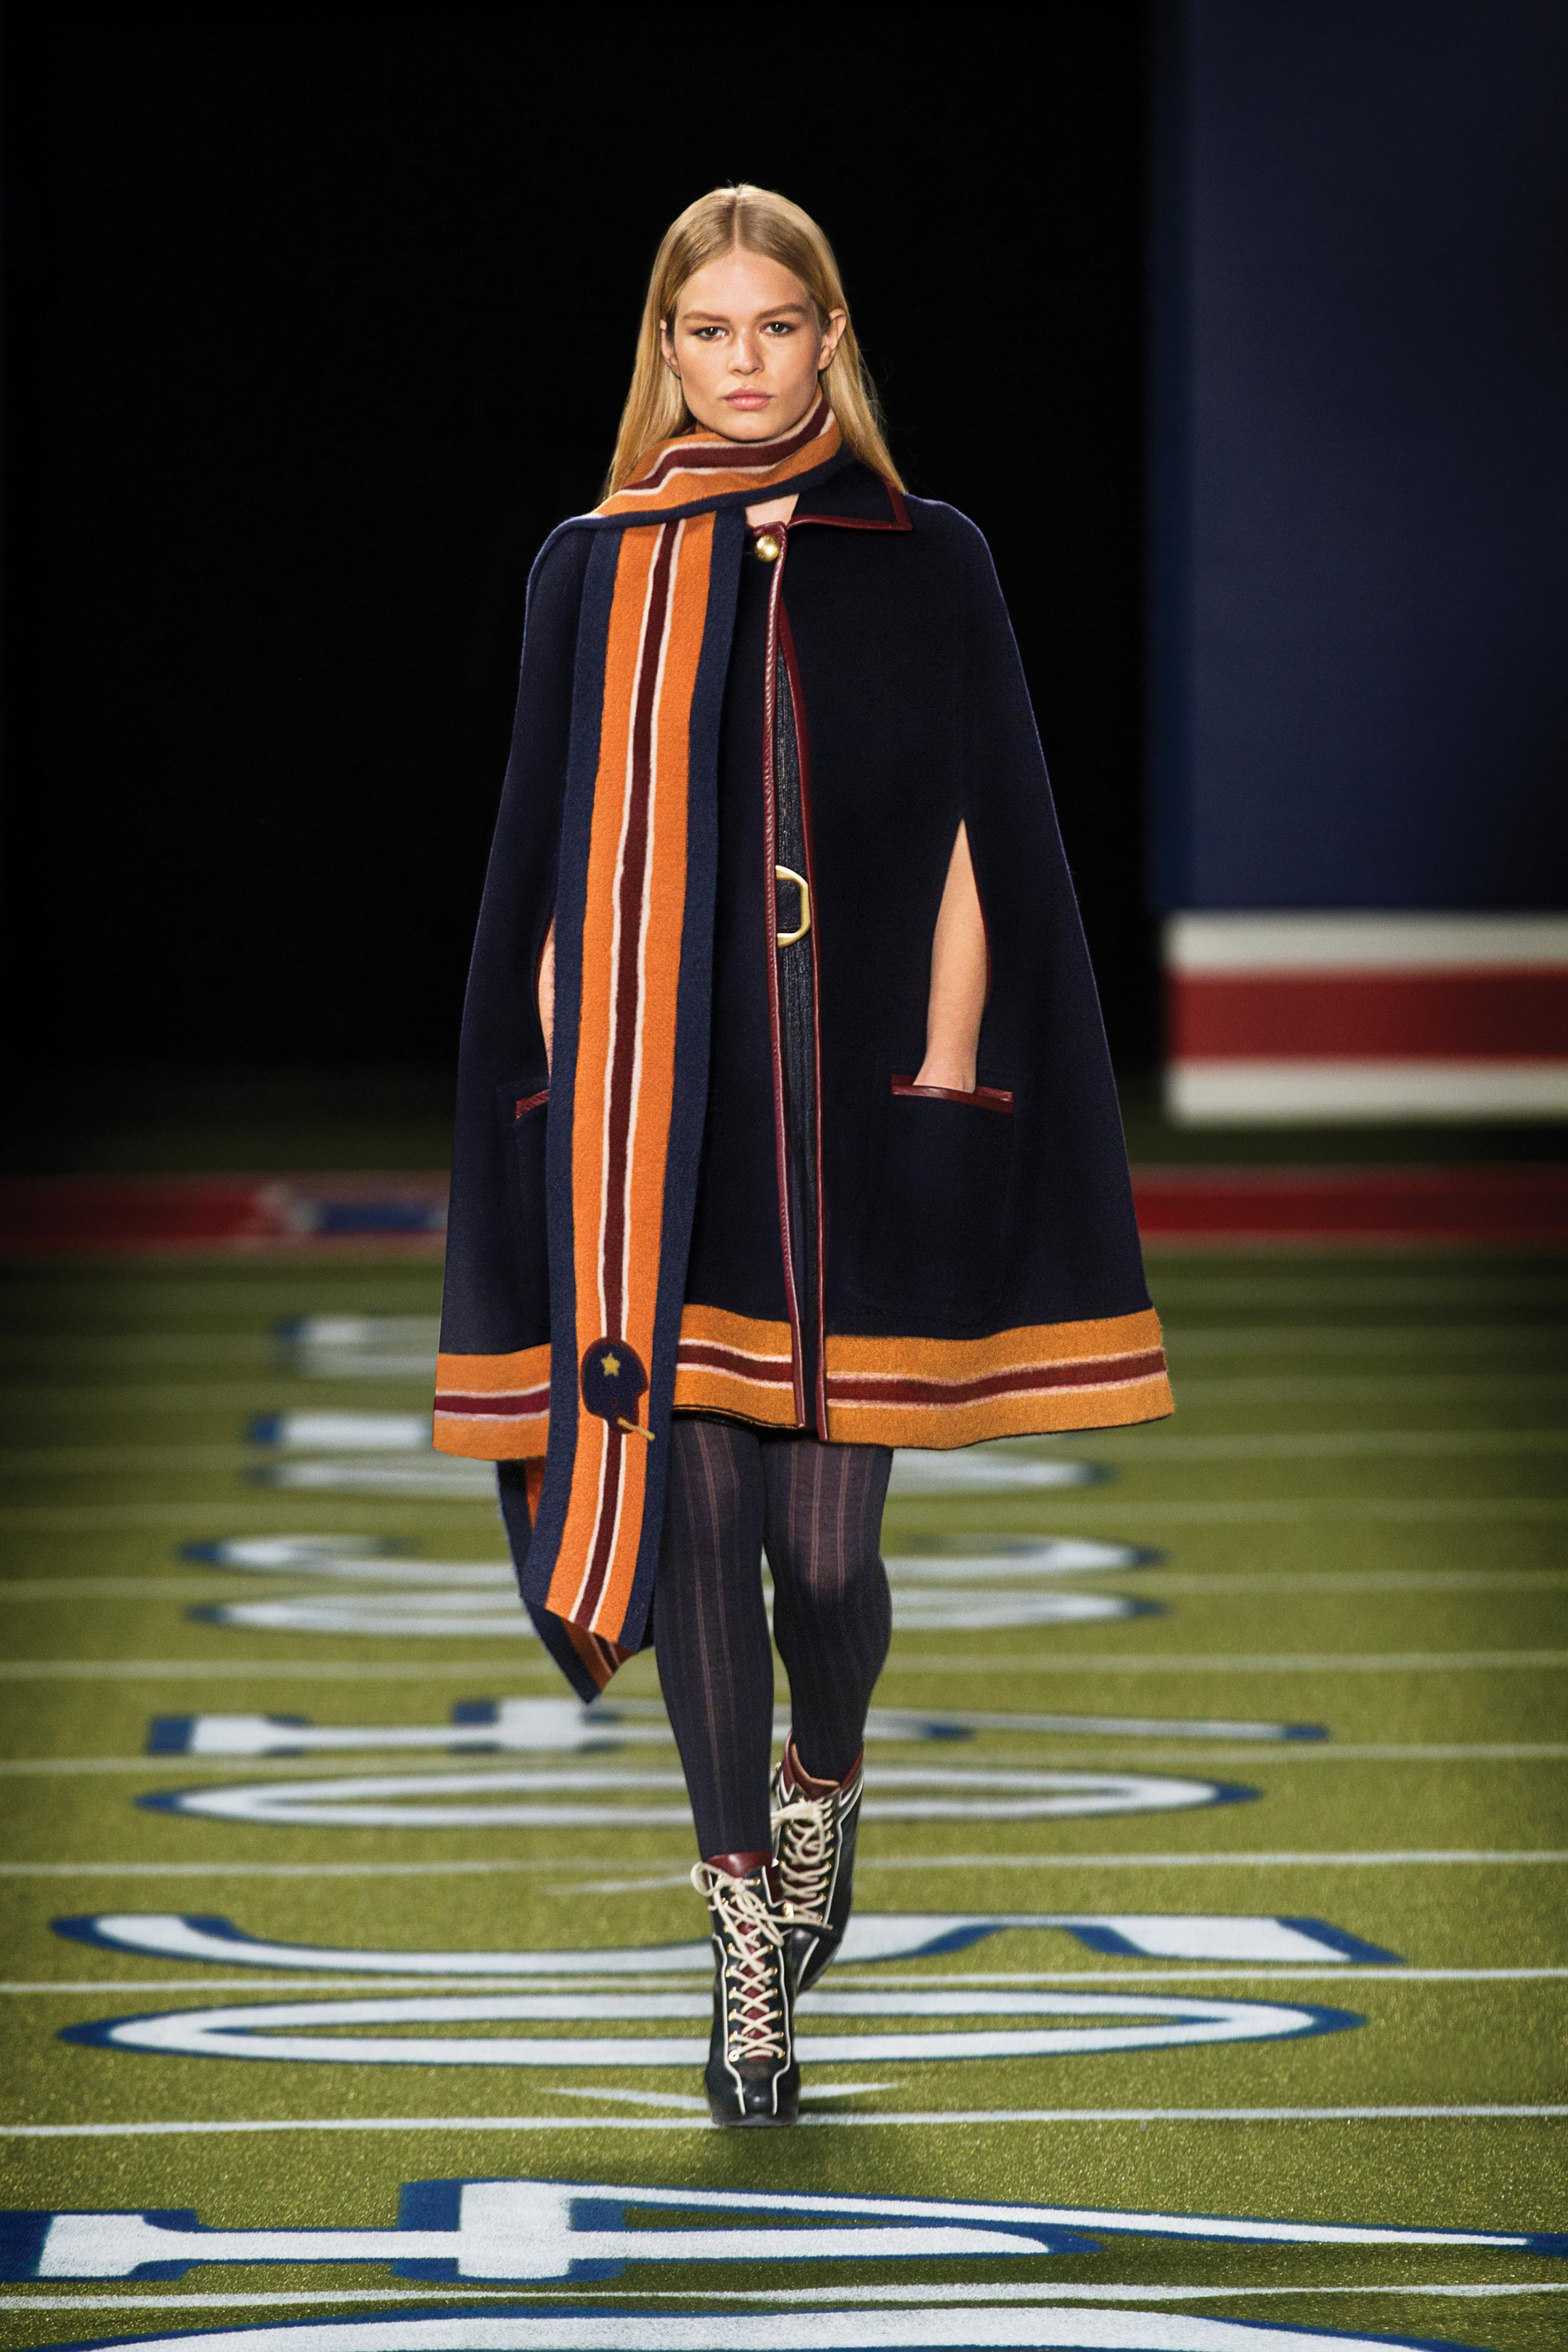 Thumbnail for Fall 2015 Runway Show - Football Theme Clothing Line